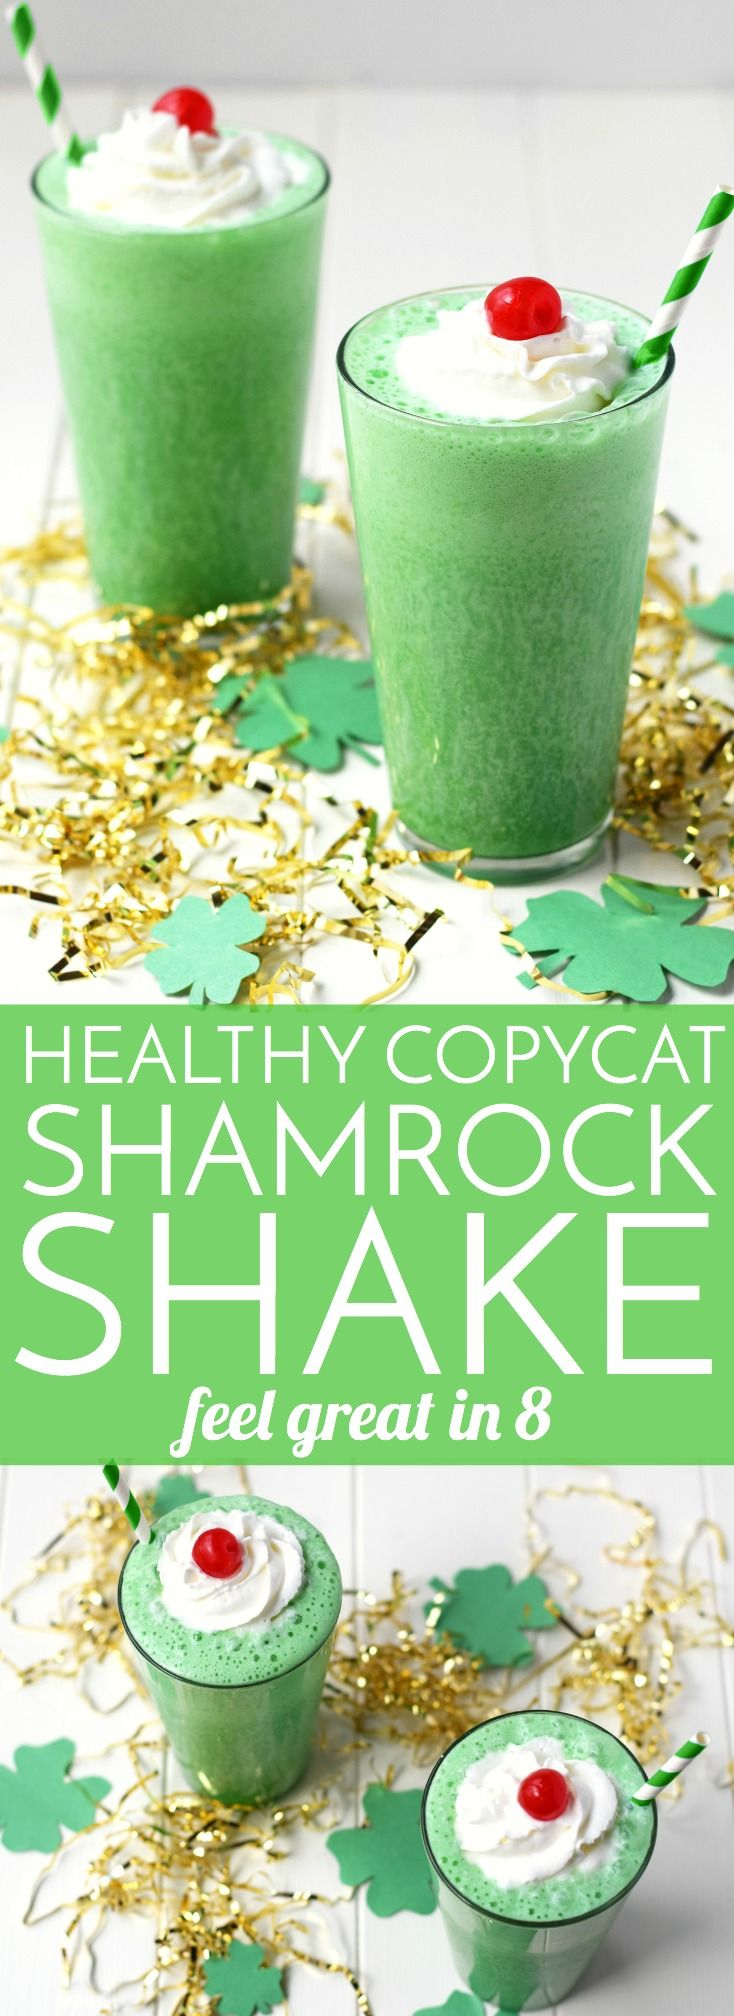 Healthy Shamrock Shake Recipe - This healthy copycat recipe is the perfect 160 calorie treat to help you avoid the drive-through!